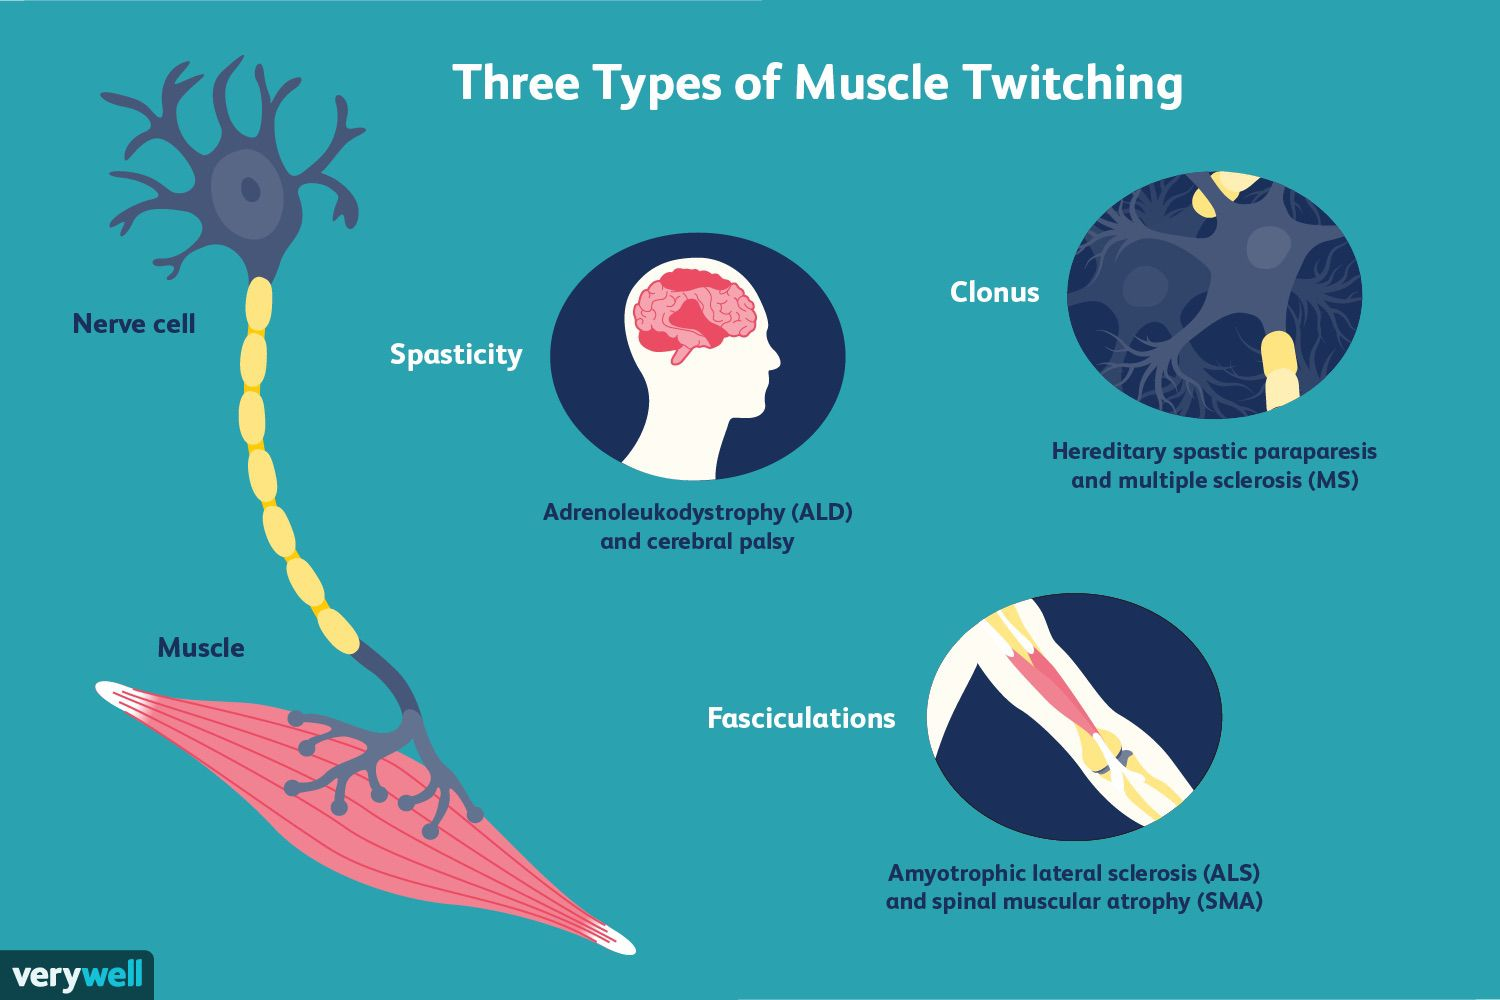 Three types of muscle twitching.